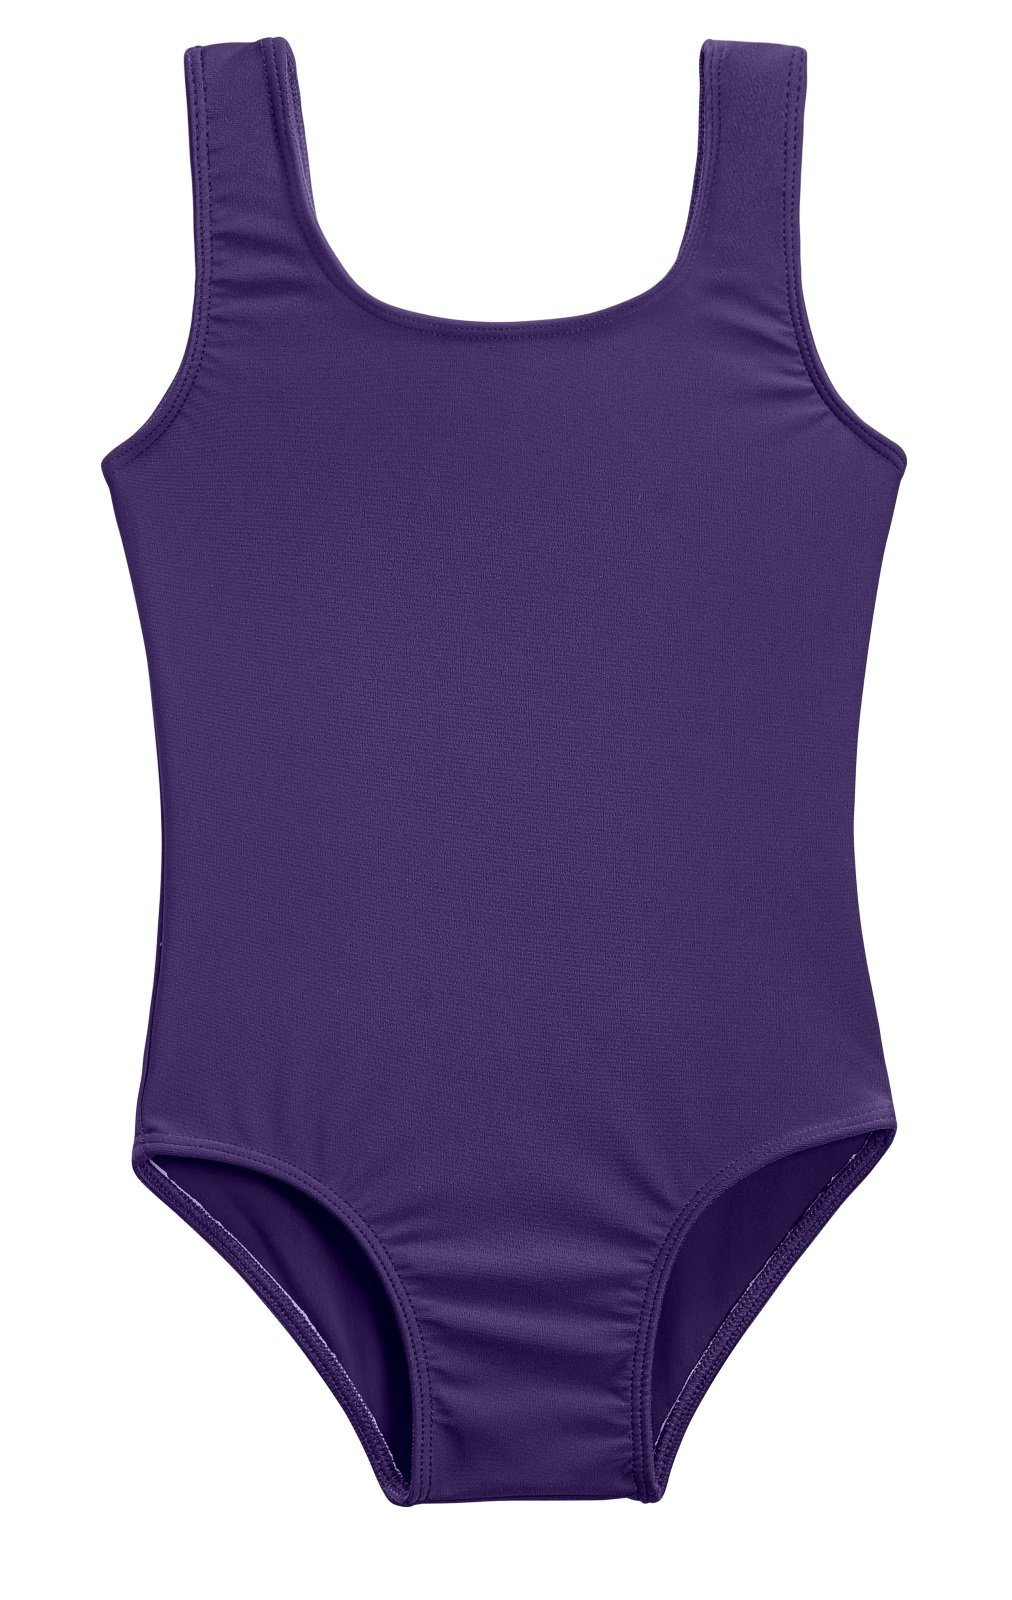 City Threads Girls' One Piece Swimming Suit with Sun Protection SPF for Beach Pool Or Play Swim Suit Rash Guard Bottoms Briefs, Purple, 2T